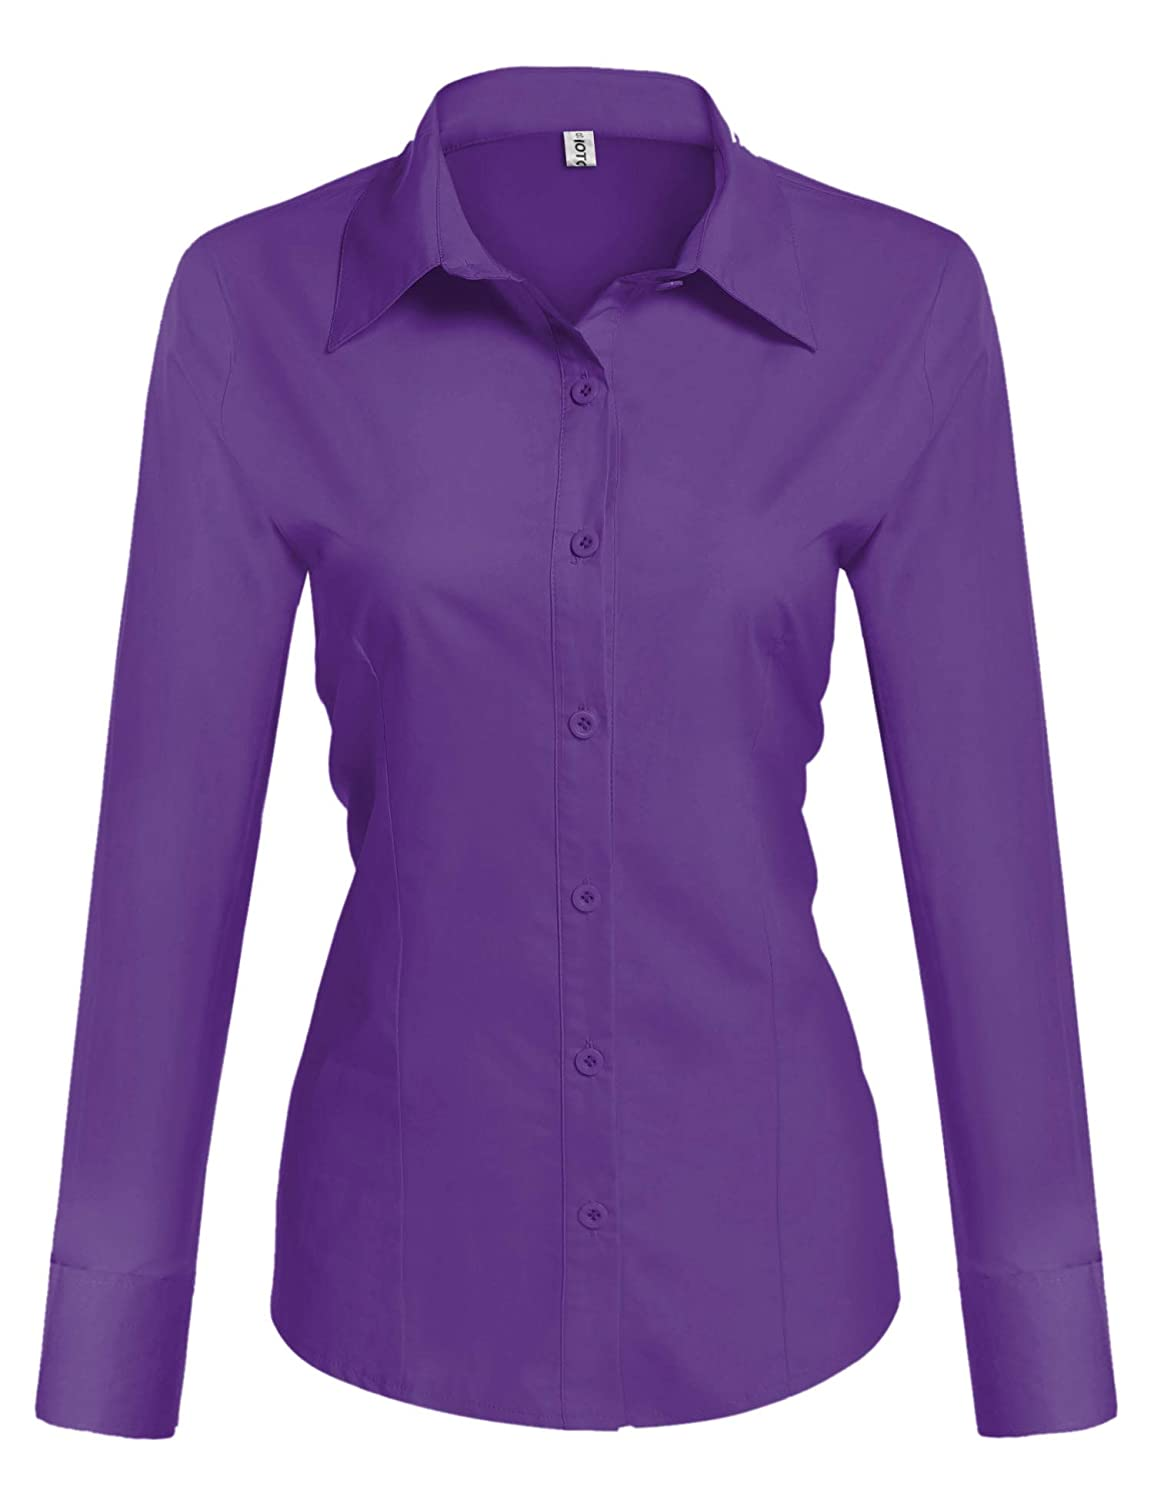 Hotouch Womens Long Sleeve Cotton Basic Simple Button Down Shirt Slim Fit Formal Dress Shirts